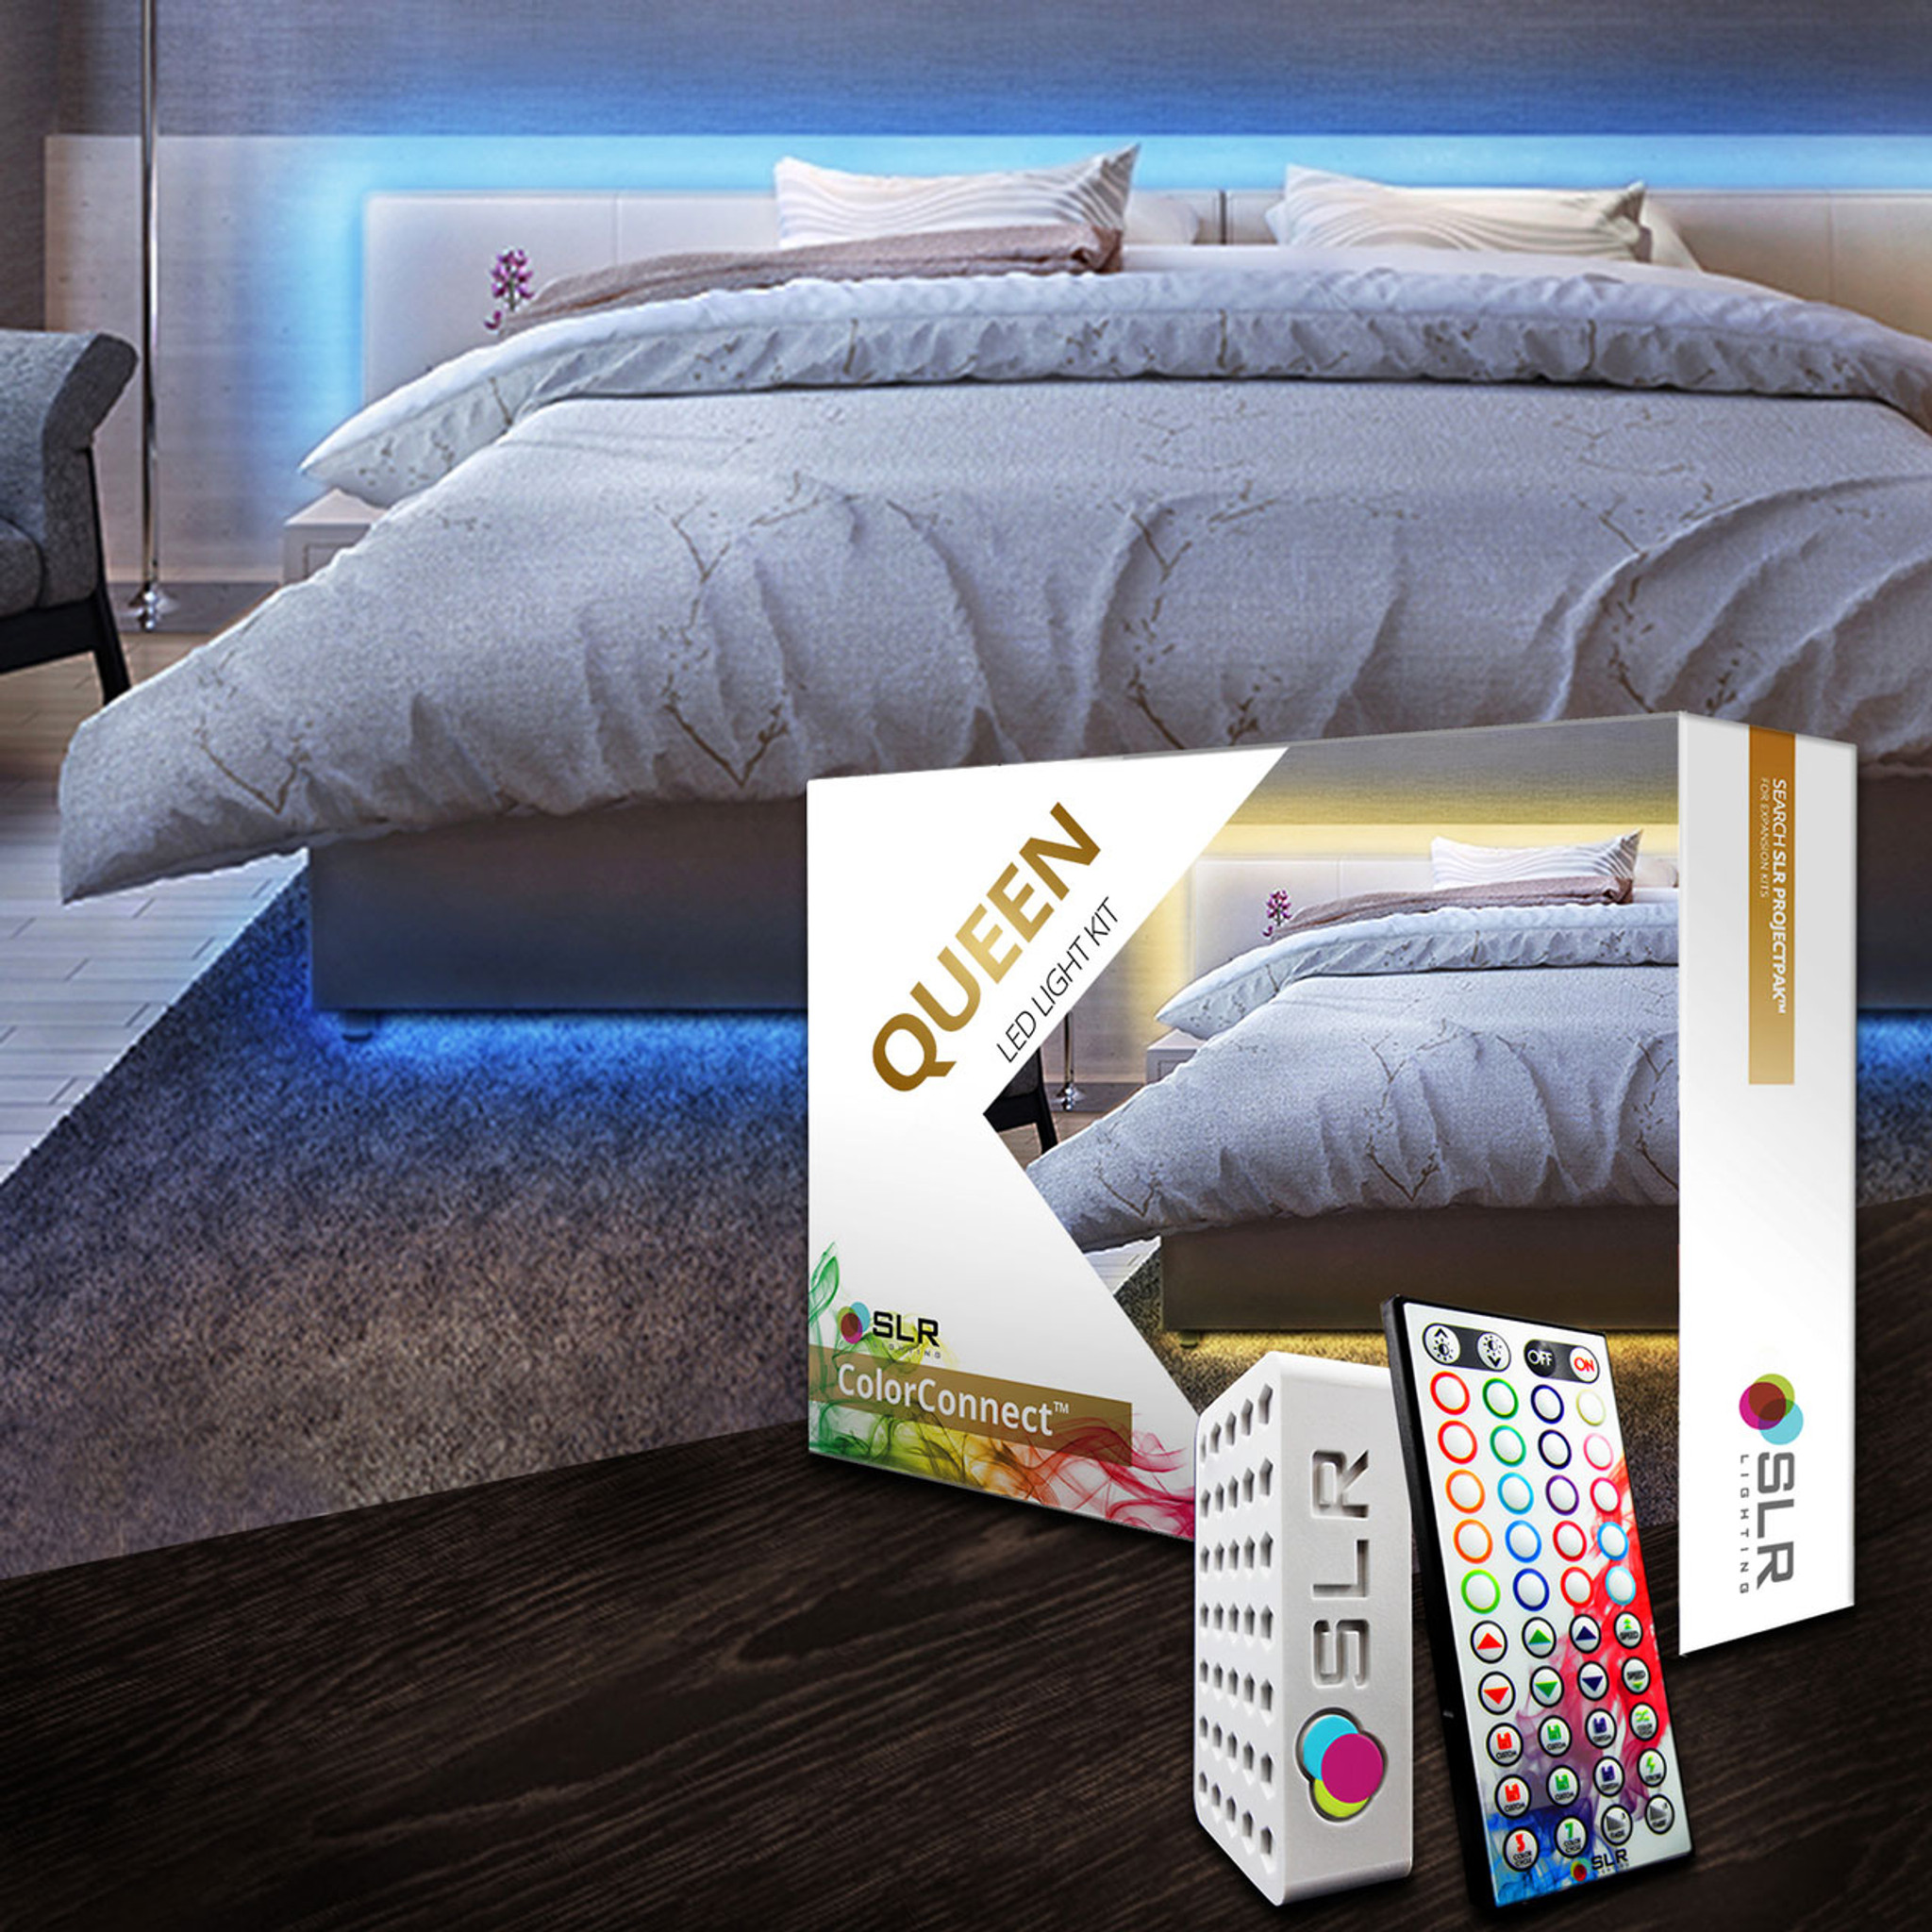 Bed Lighting Kit - Multi-Color LED Accent Lights For Under Bed & Headboards